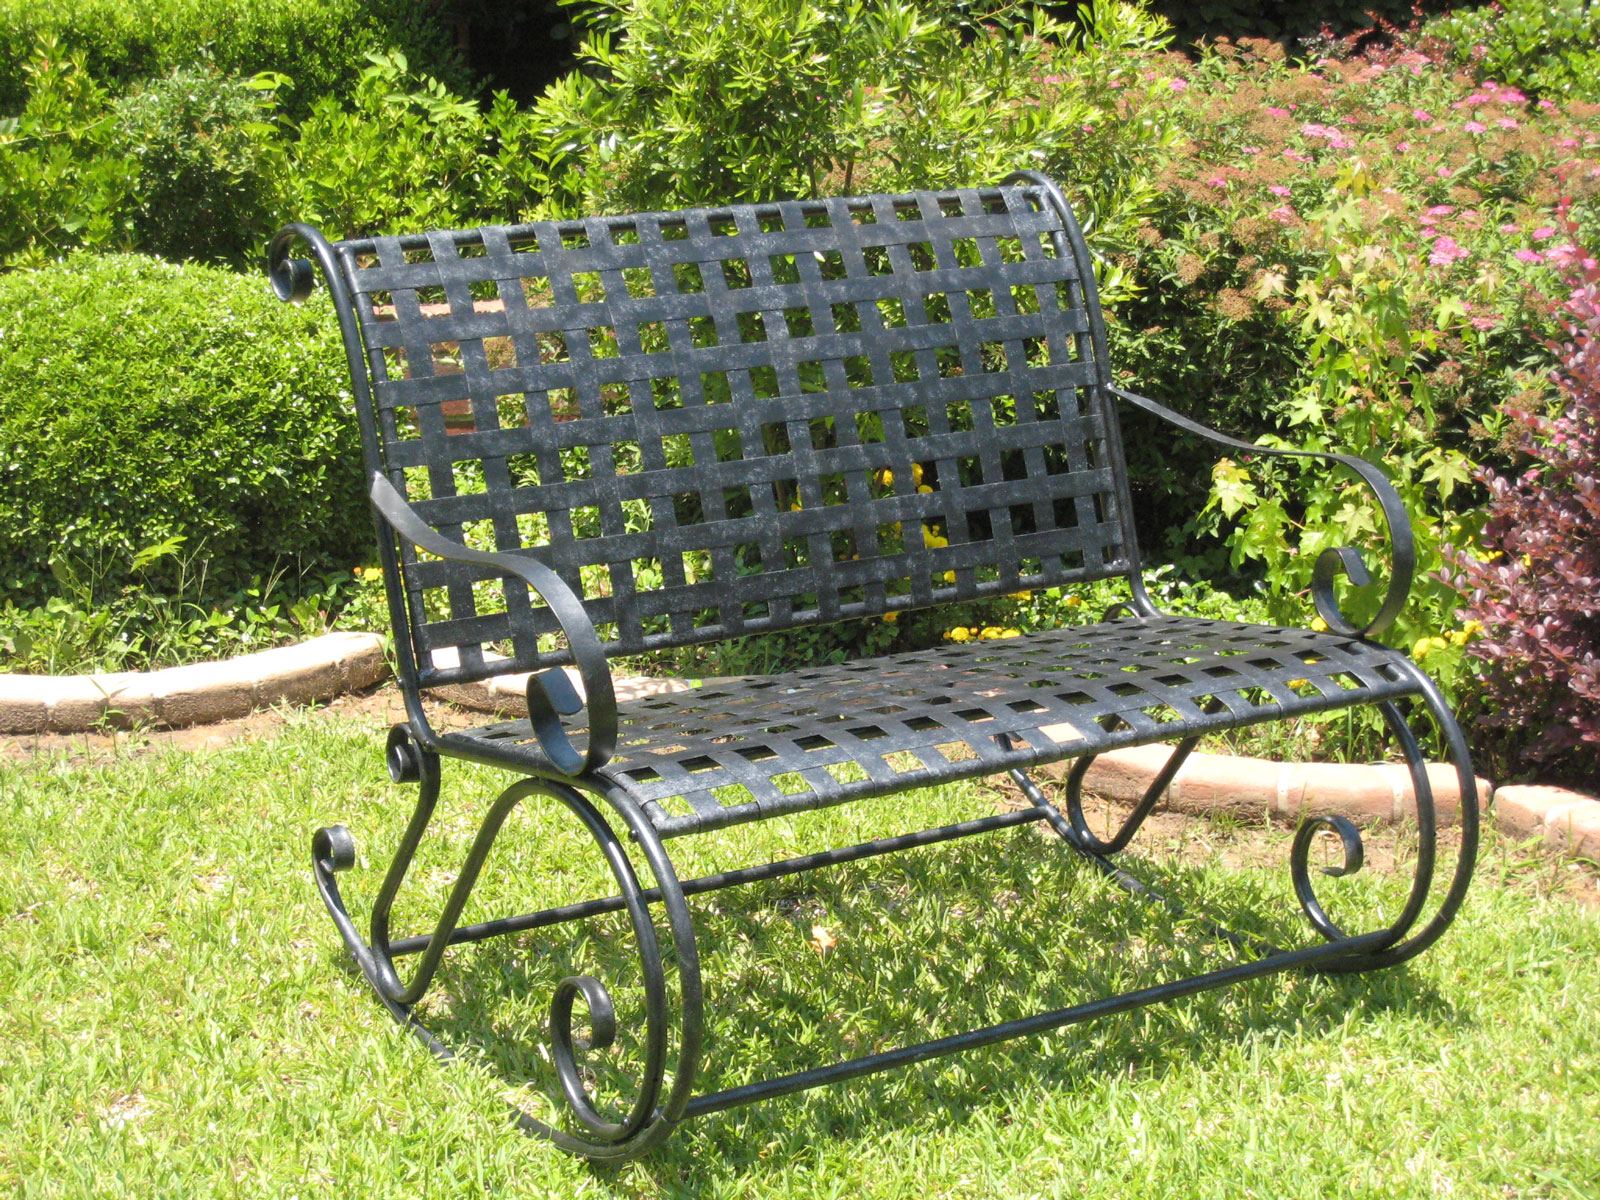 Photos of Wrought Iron Bench Rocker - Lattice Image wrought iron benches outdoor